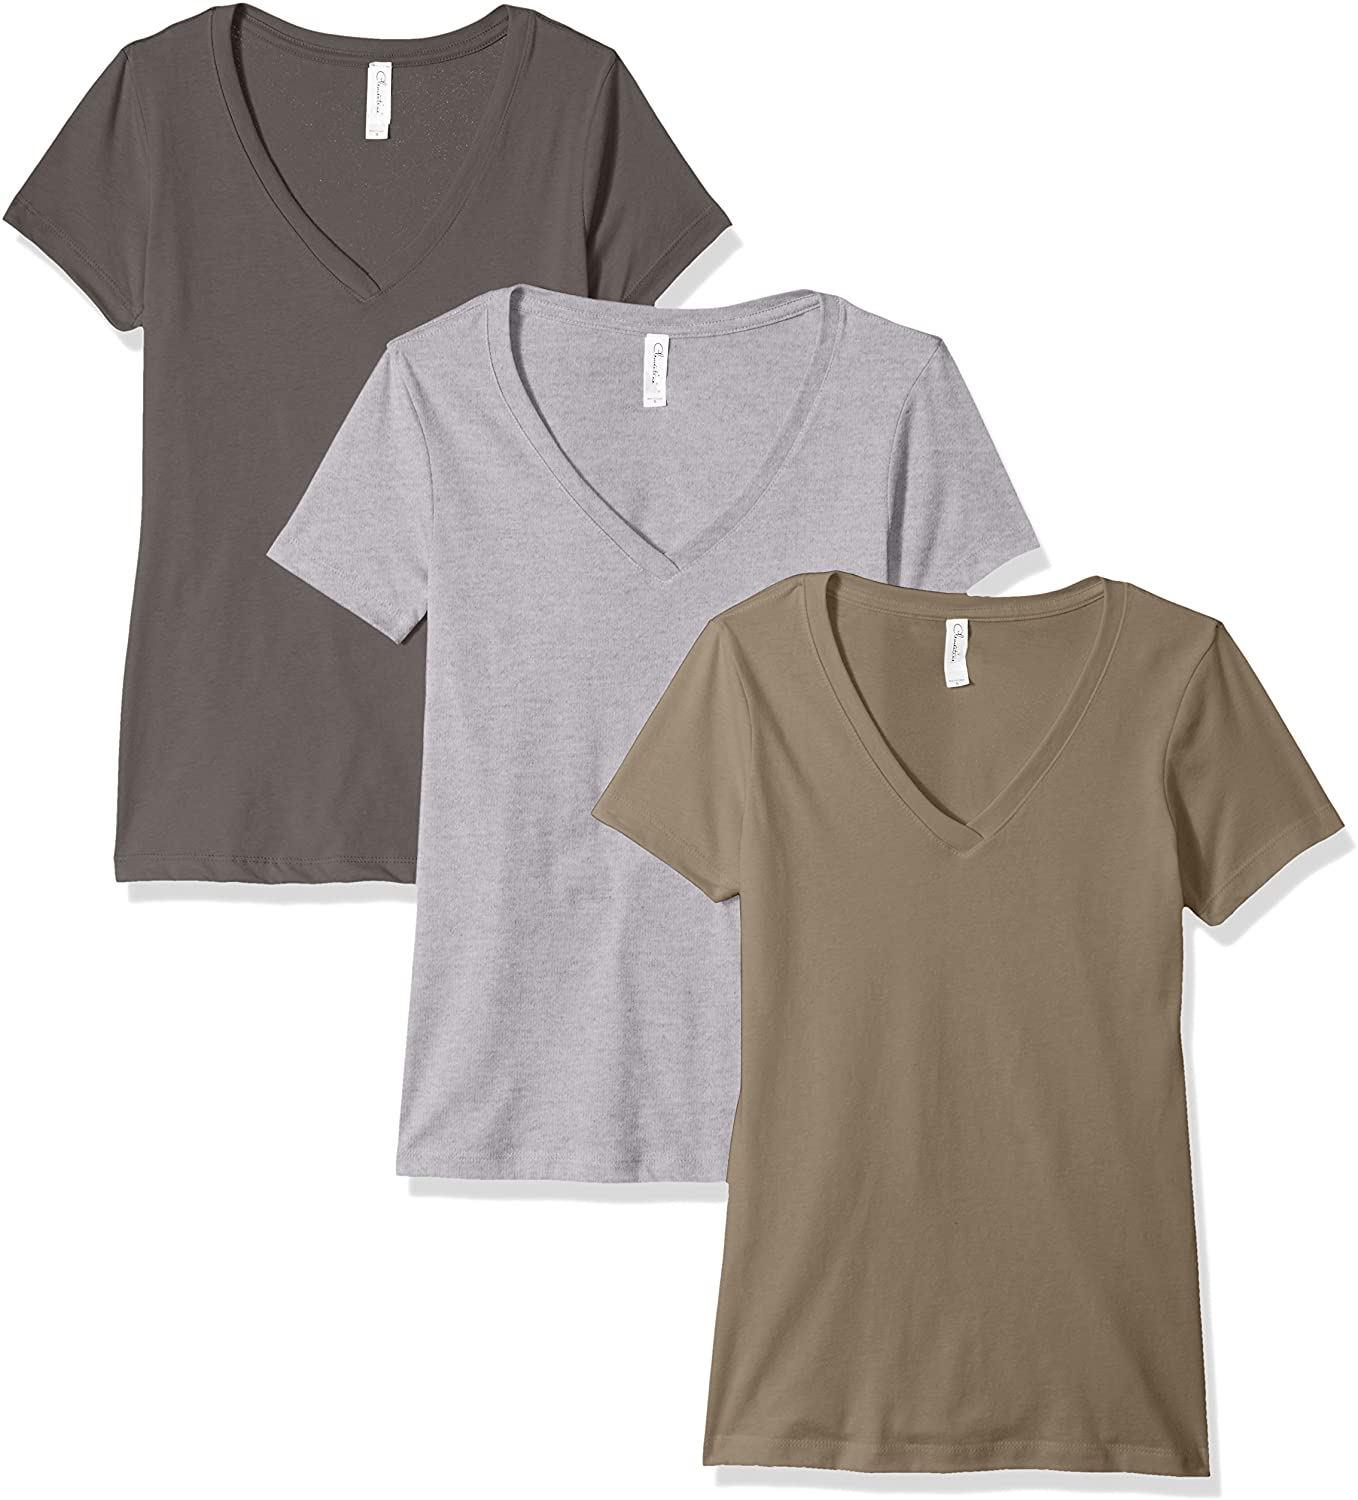 Clementine Apparel V Neck Shirts For Women CLM1540- 3 Pack